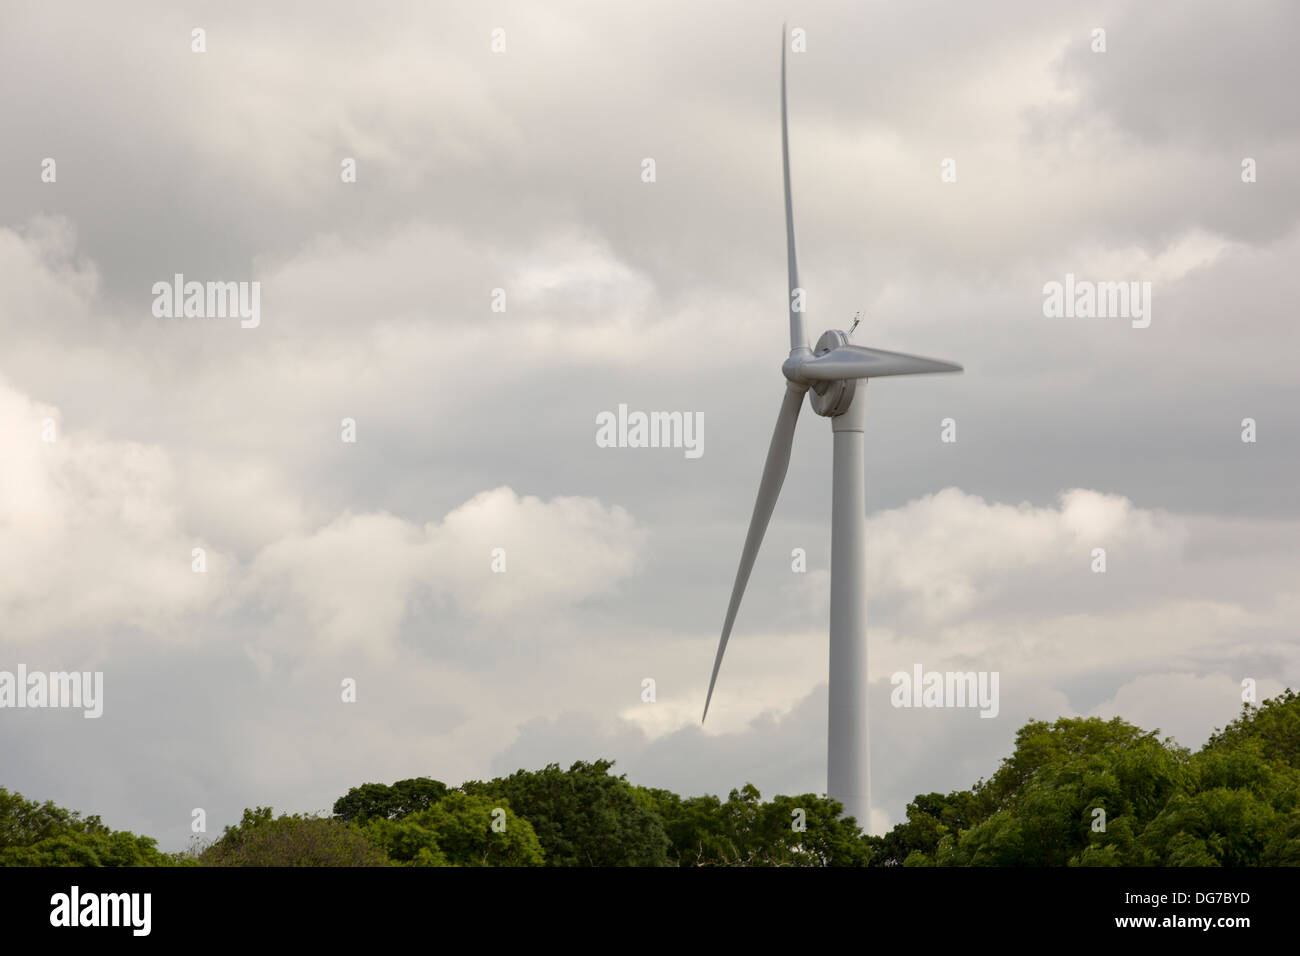 A 500 Kw wind turbine at Back Lane quarry, used to power the quarry operations, near Carnforth, Lancashire, UK. - Stock Image